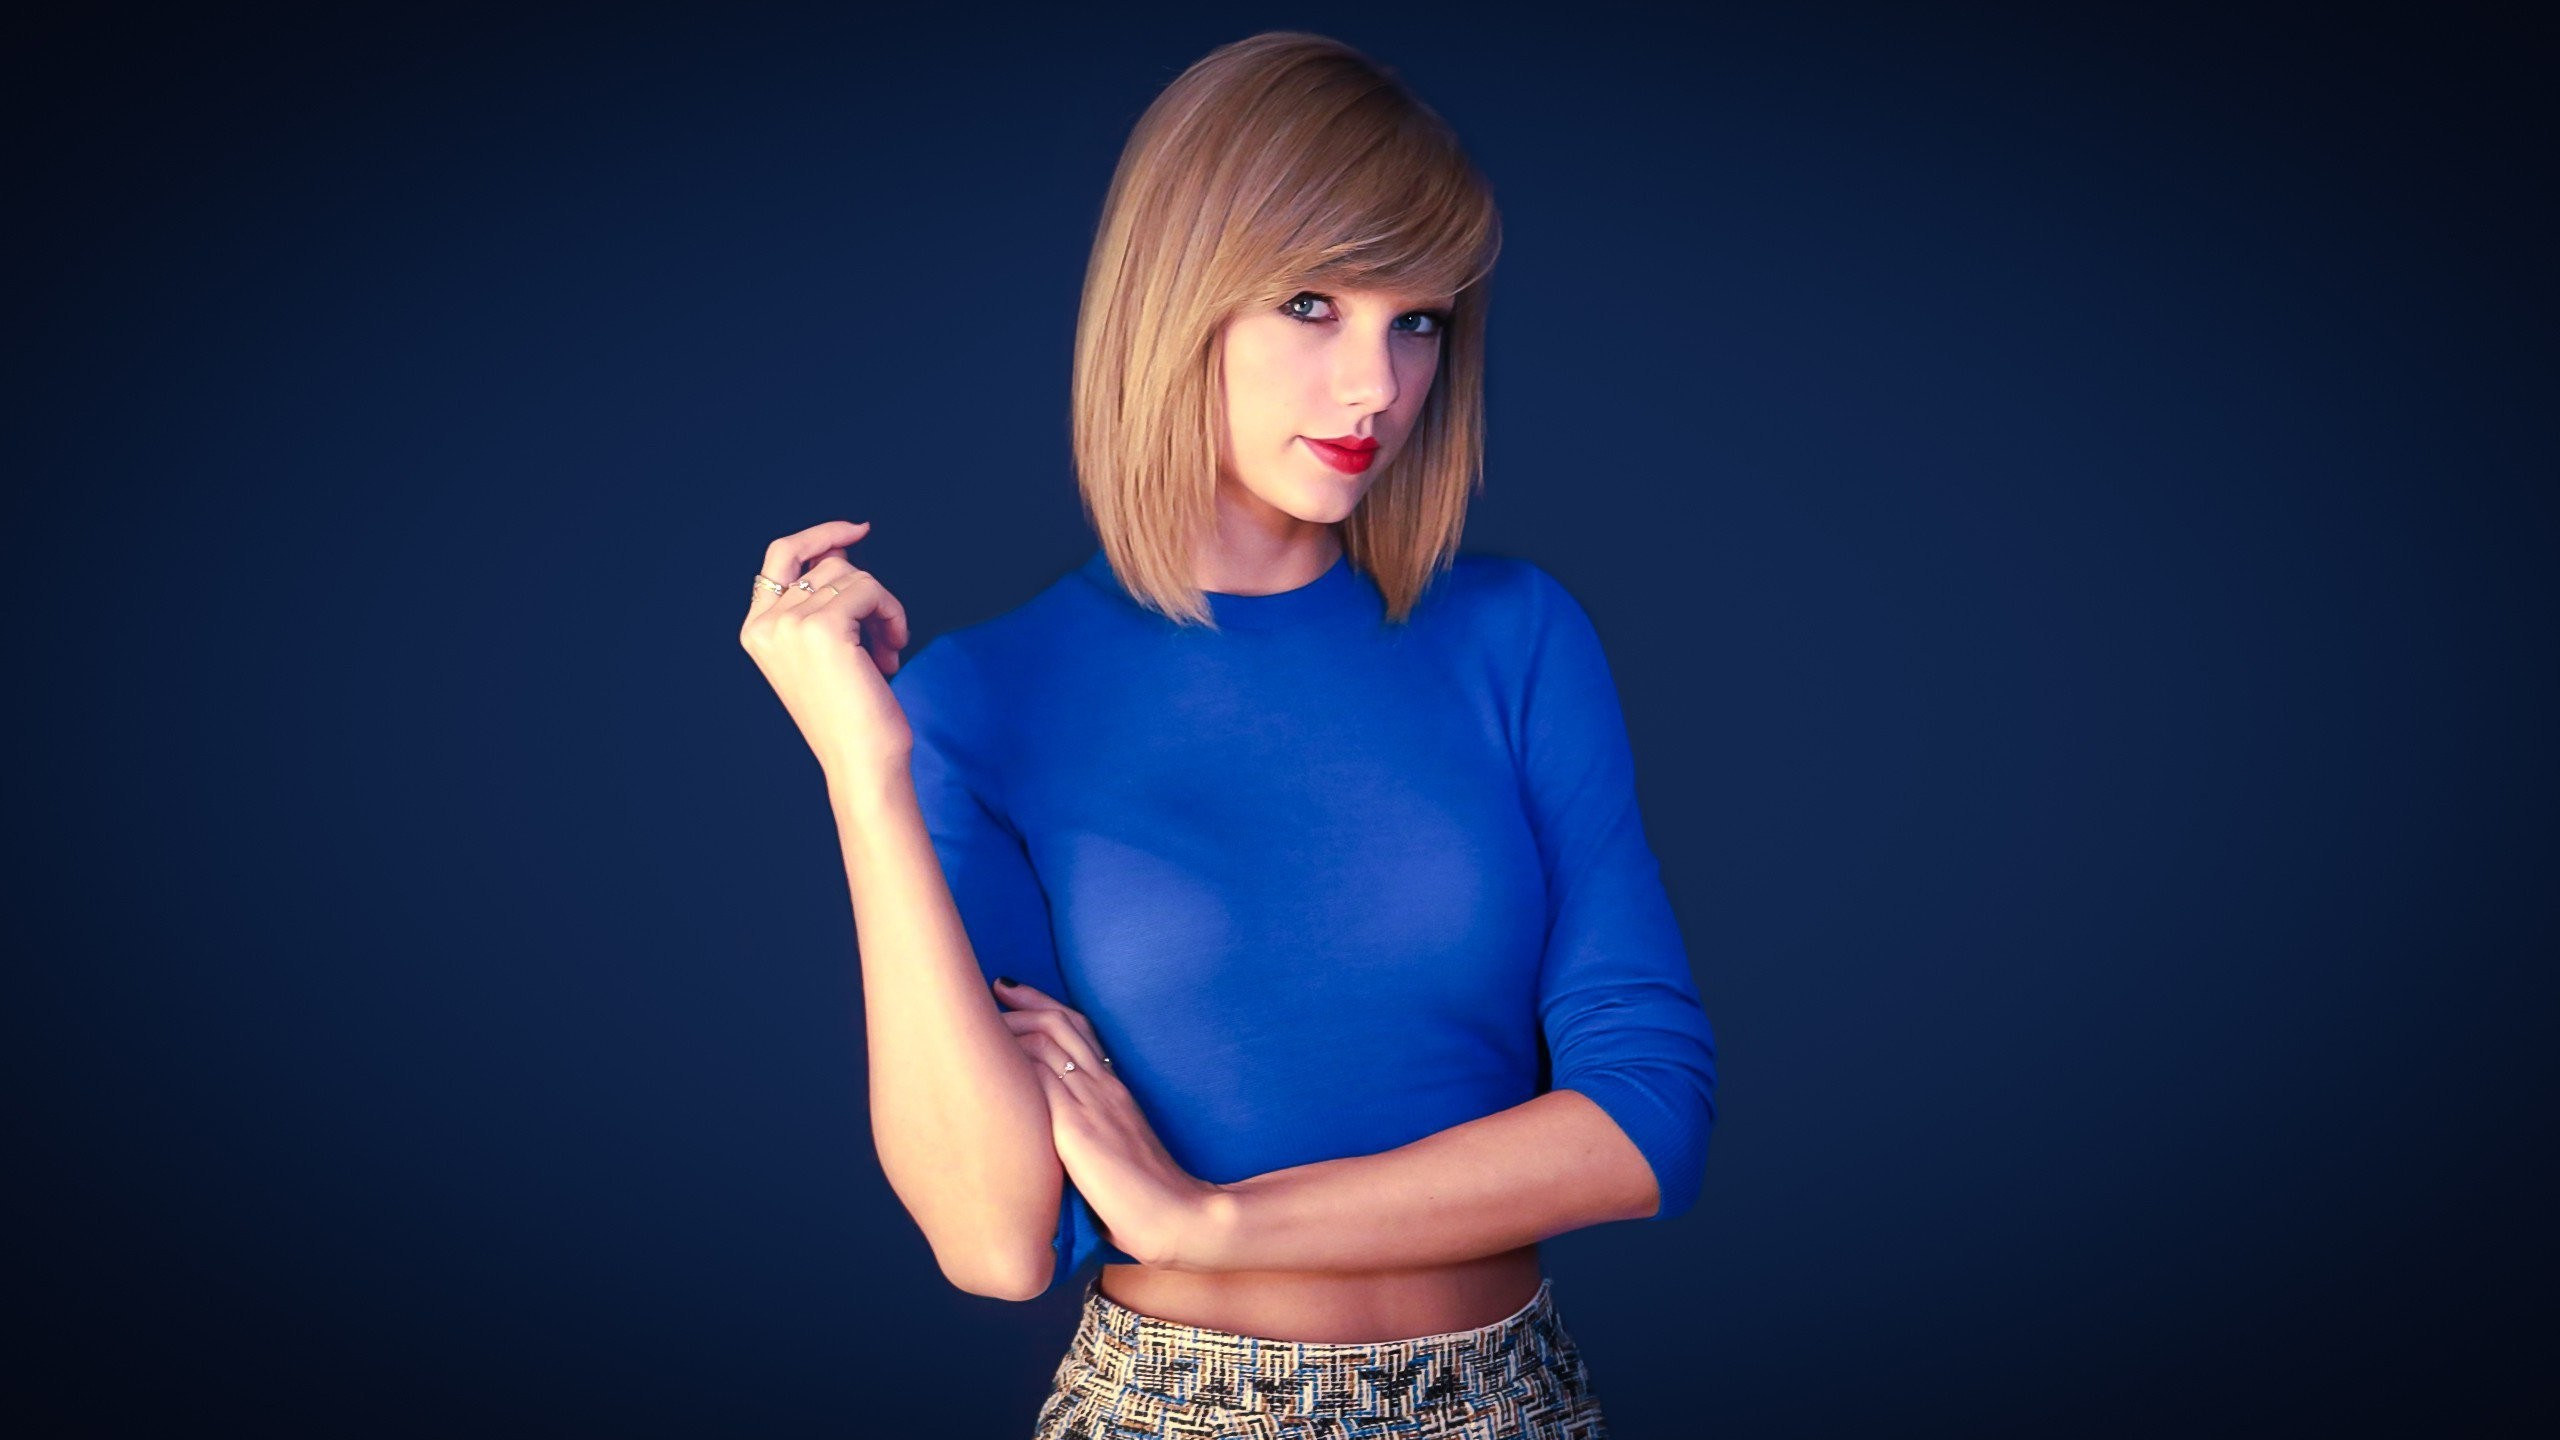 2560x1440 Taylor Swift Wallpapers 15 - 2560 X 1440